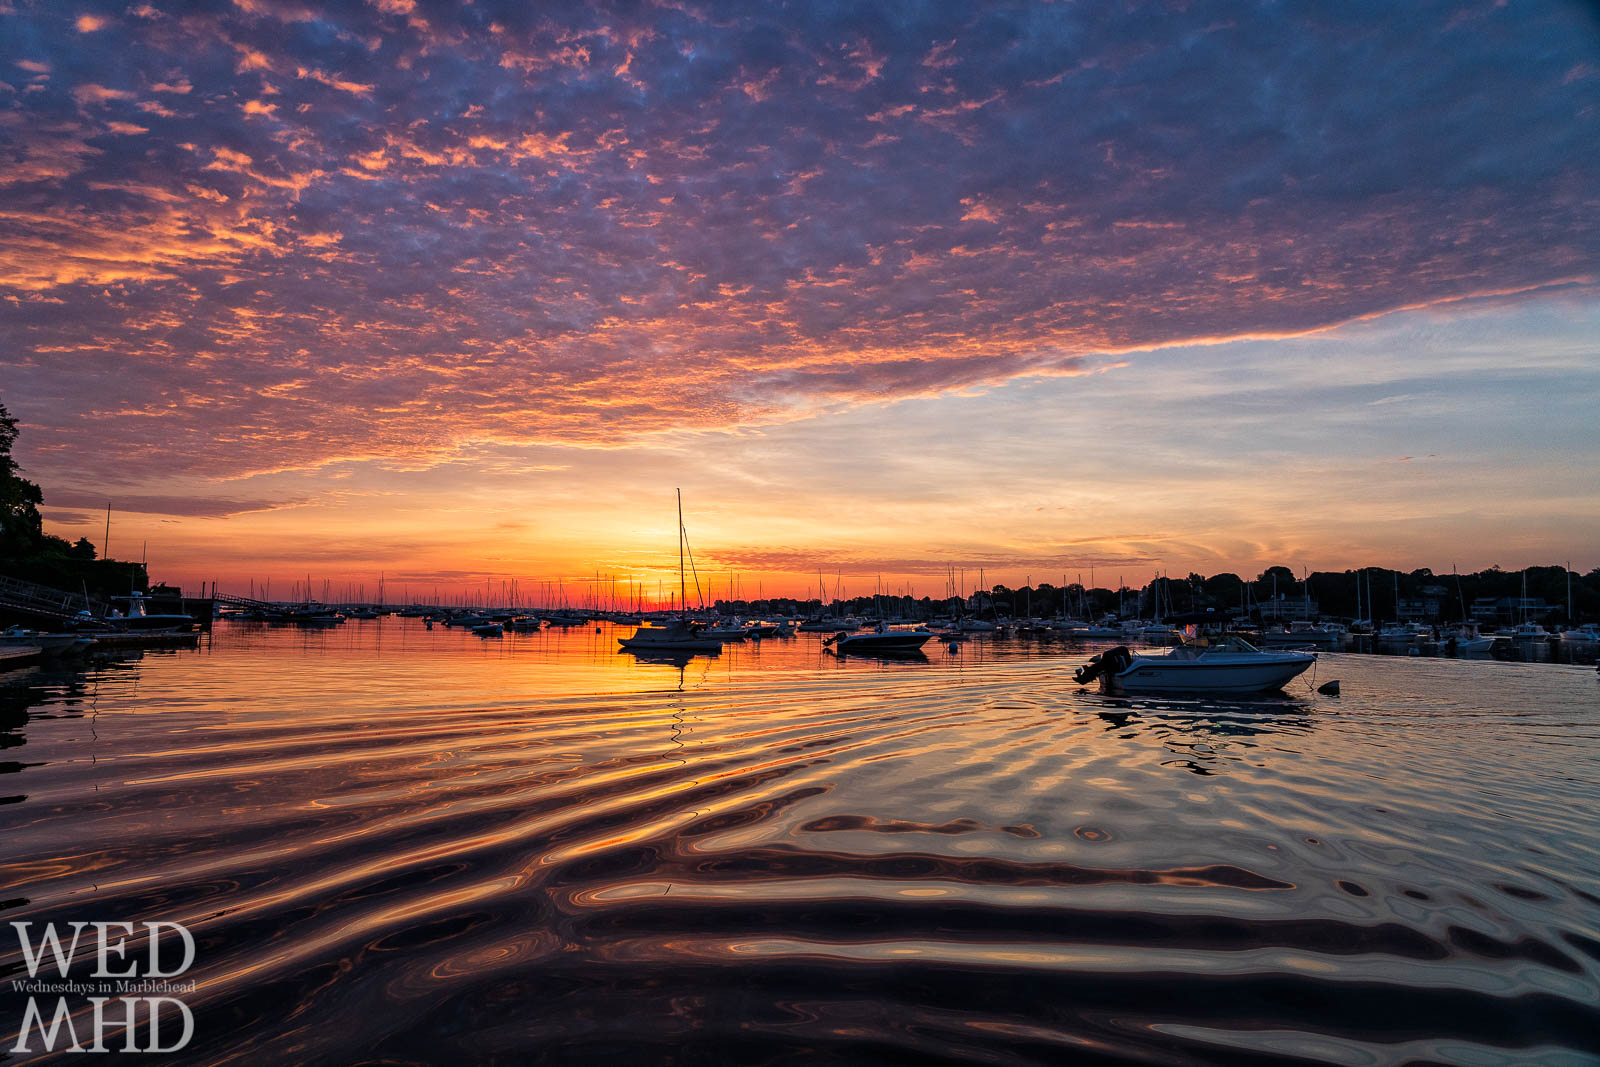 A passing boat's wake creates subtle waves to accentuate sunrise reflections on Marblehead Harbor